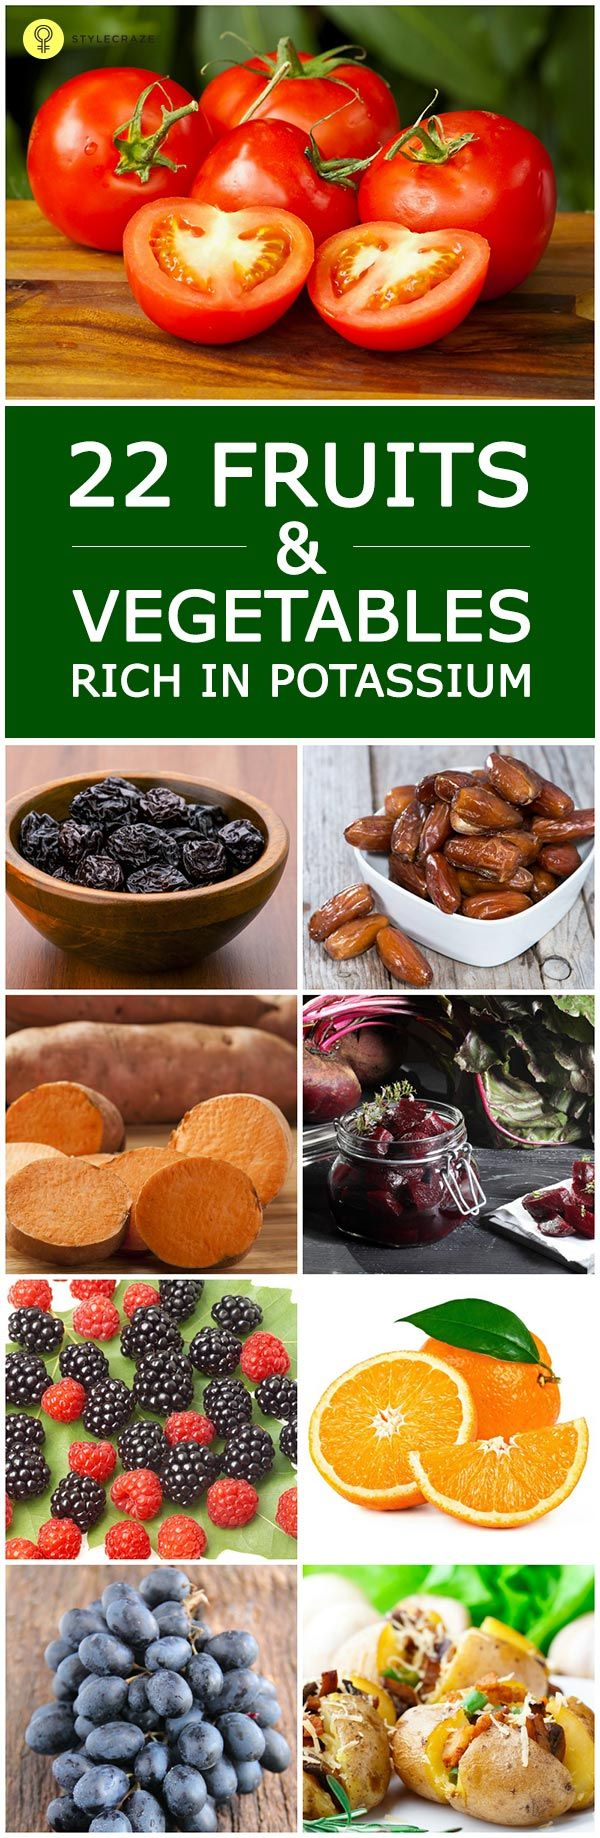 Top 15 PotassiumRich Foods And Their Benefits Potassium